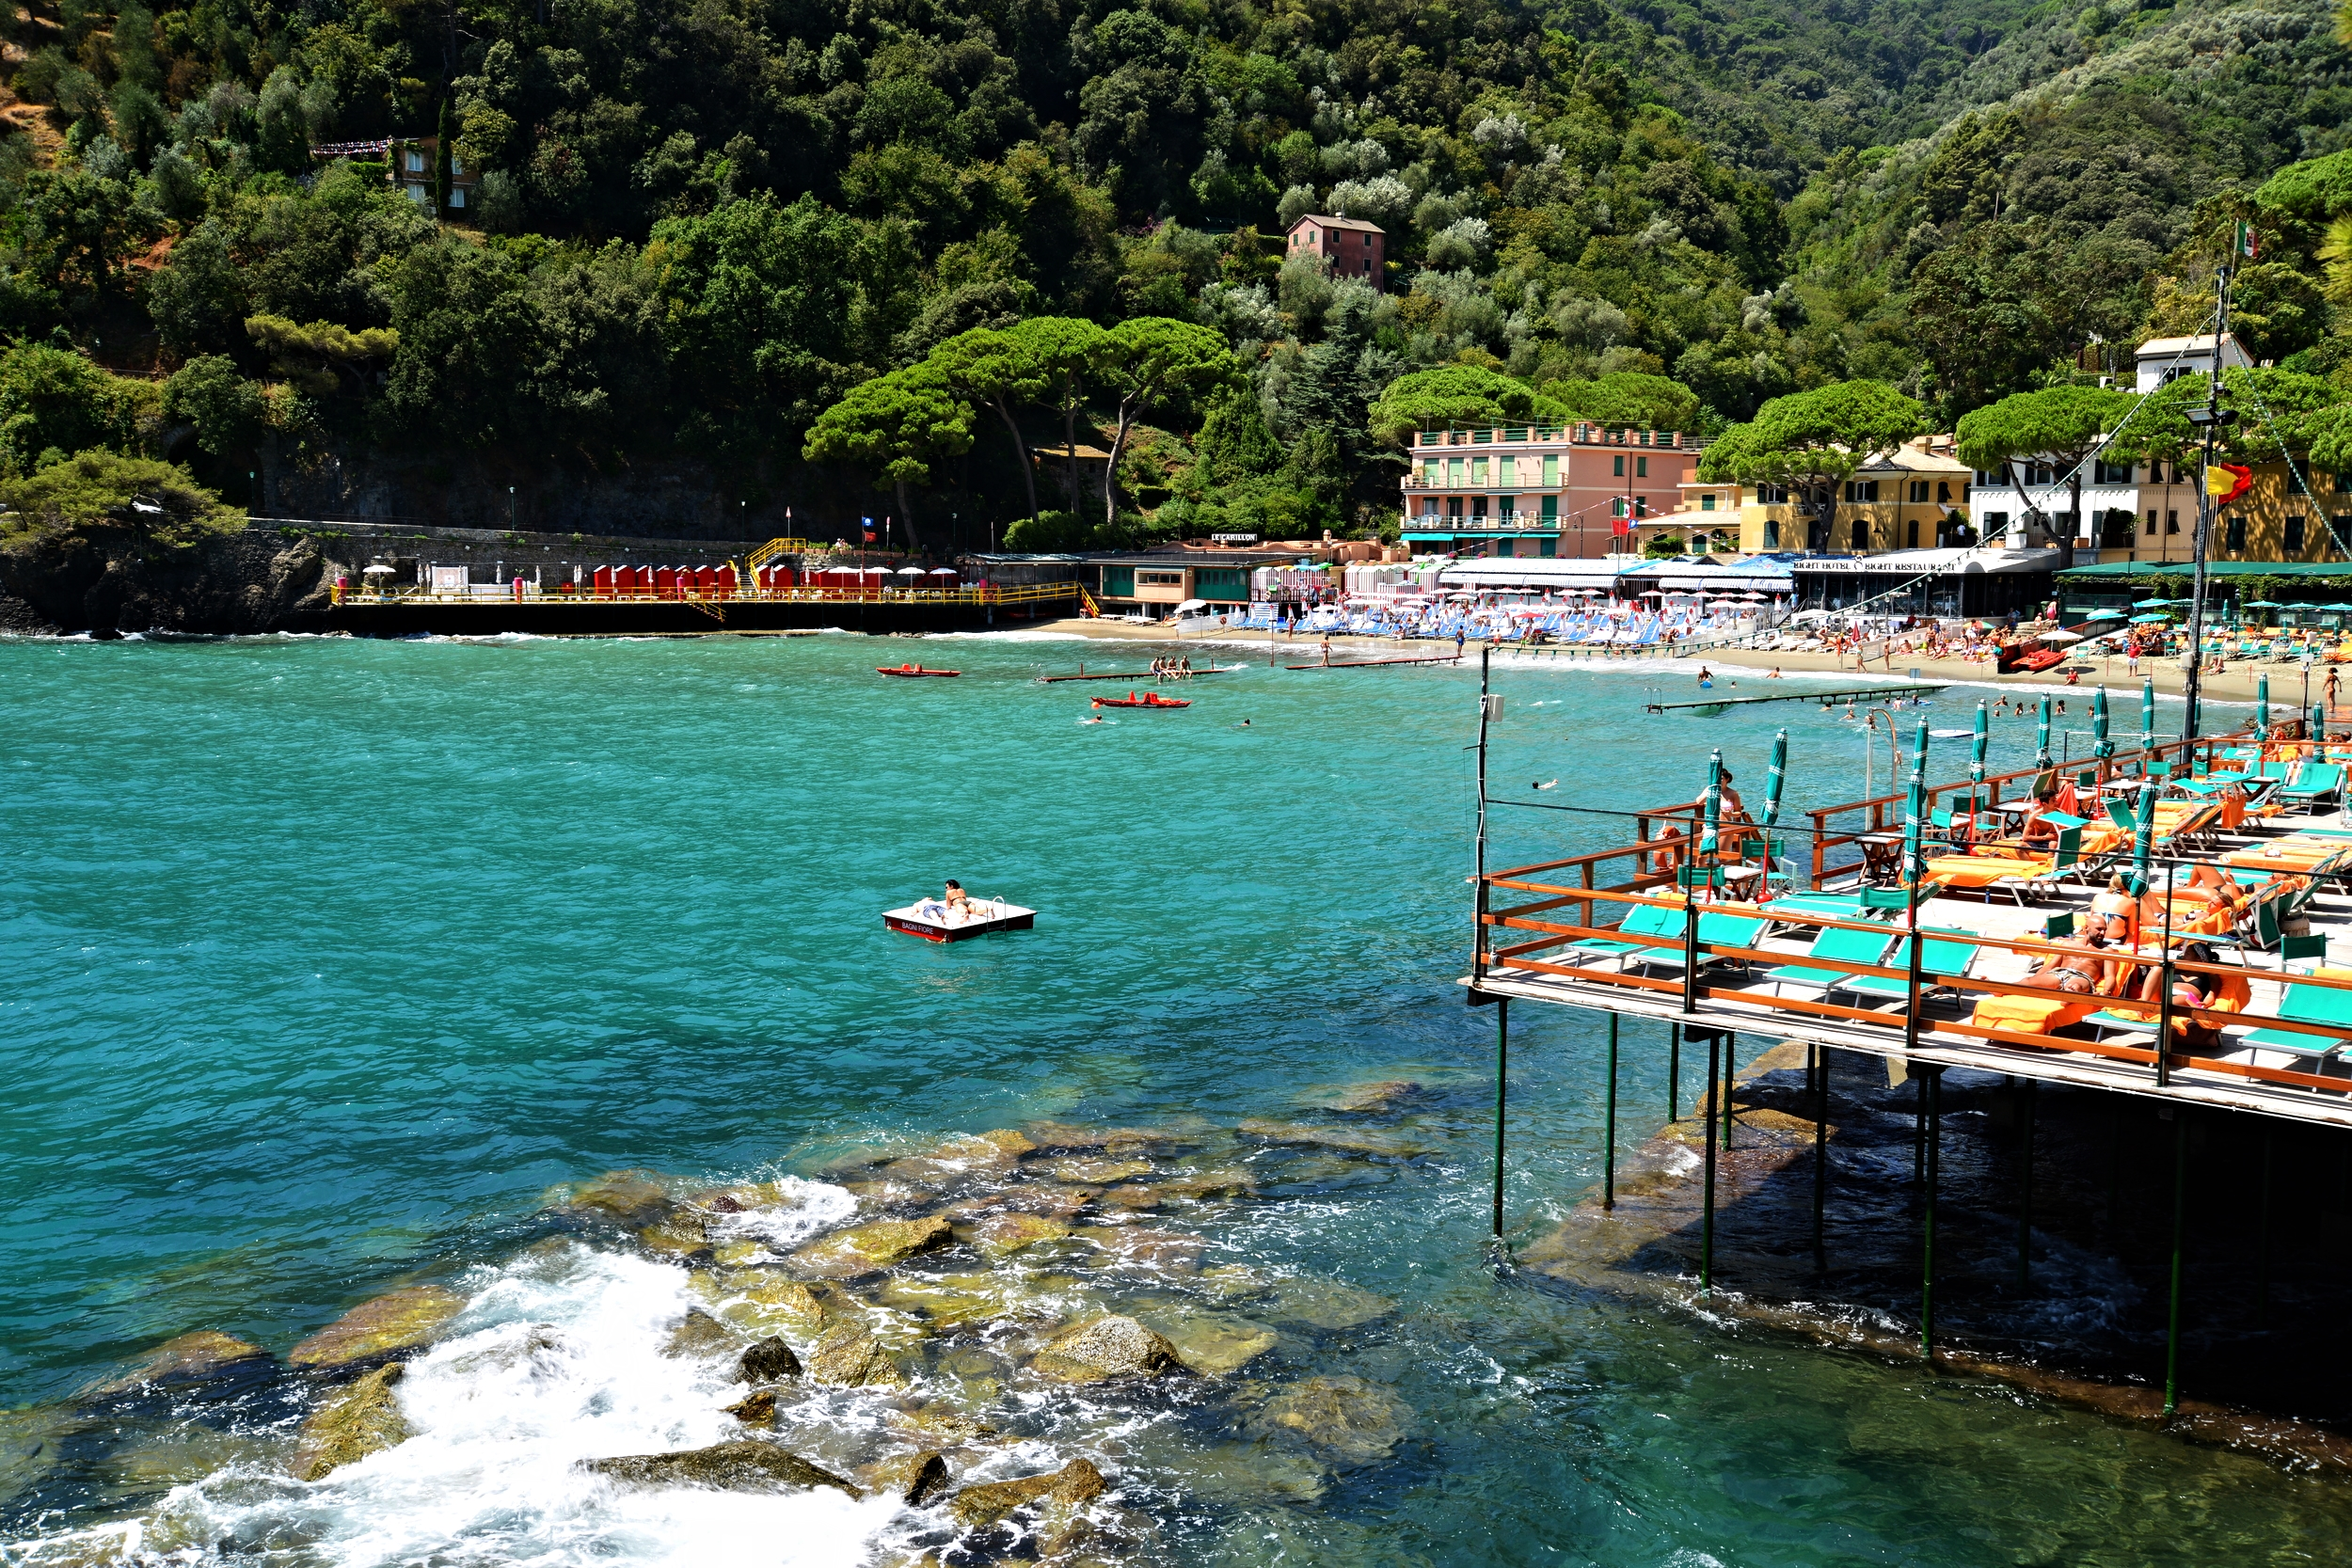 The bright turquoise warm water of the Liguria Coast in Italy is so inviting, you can't resist to jump in!